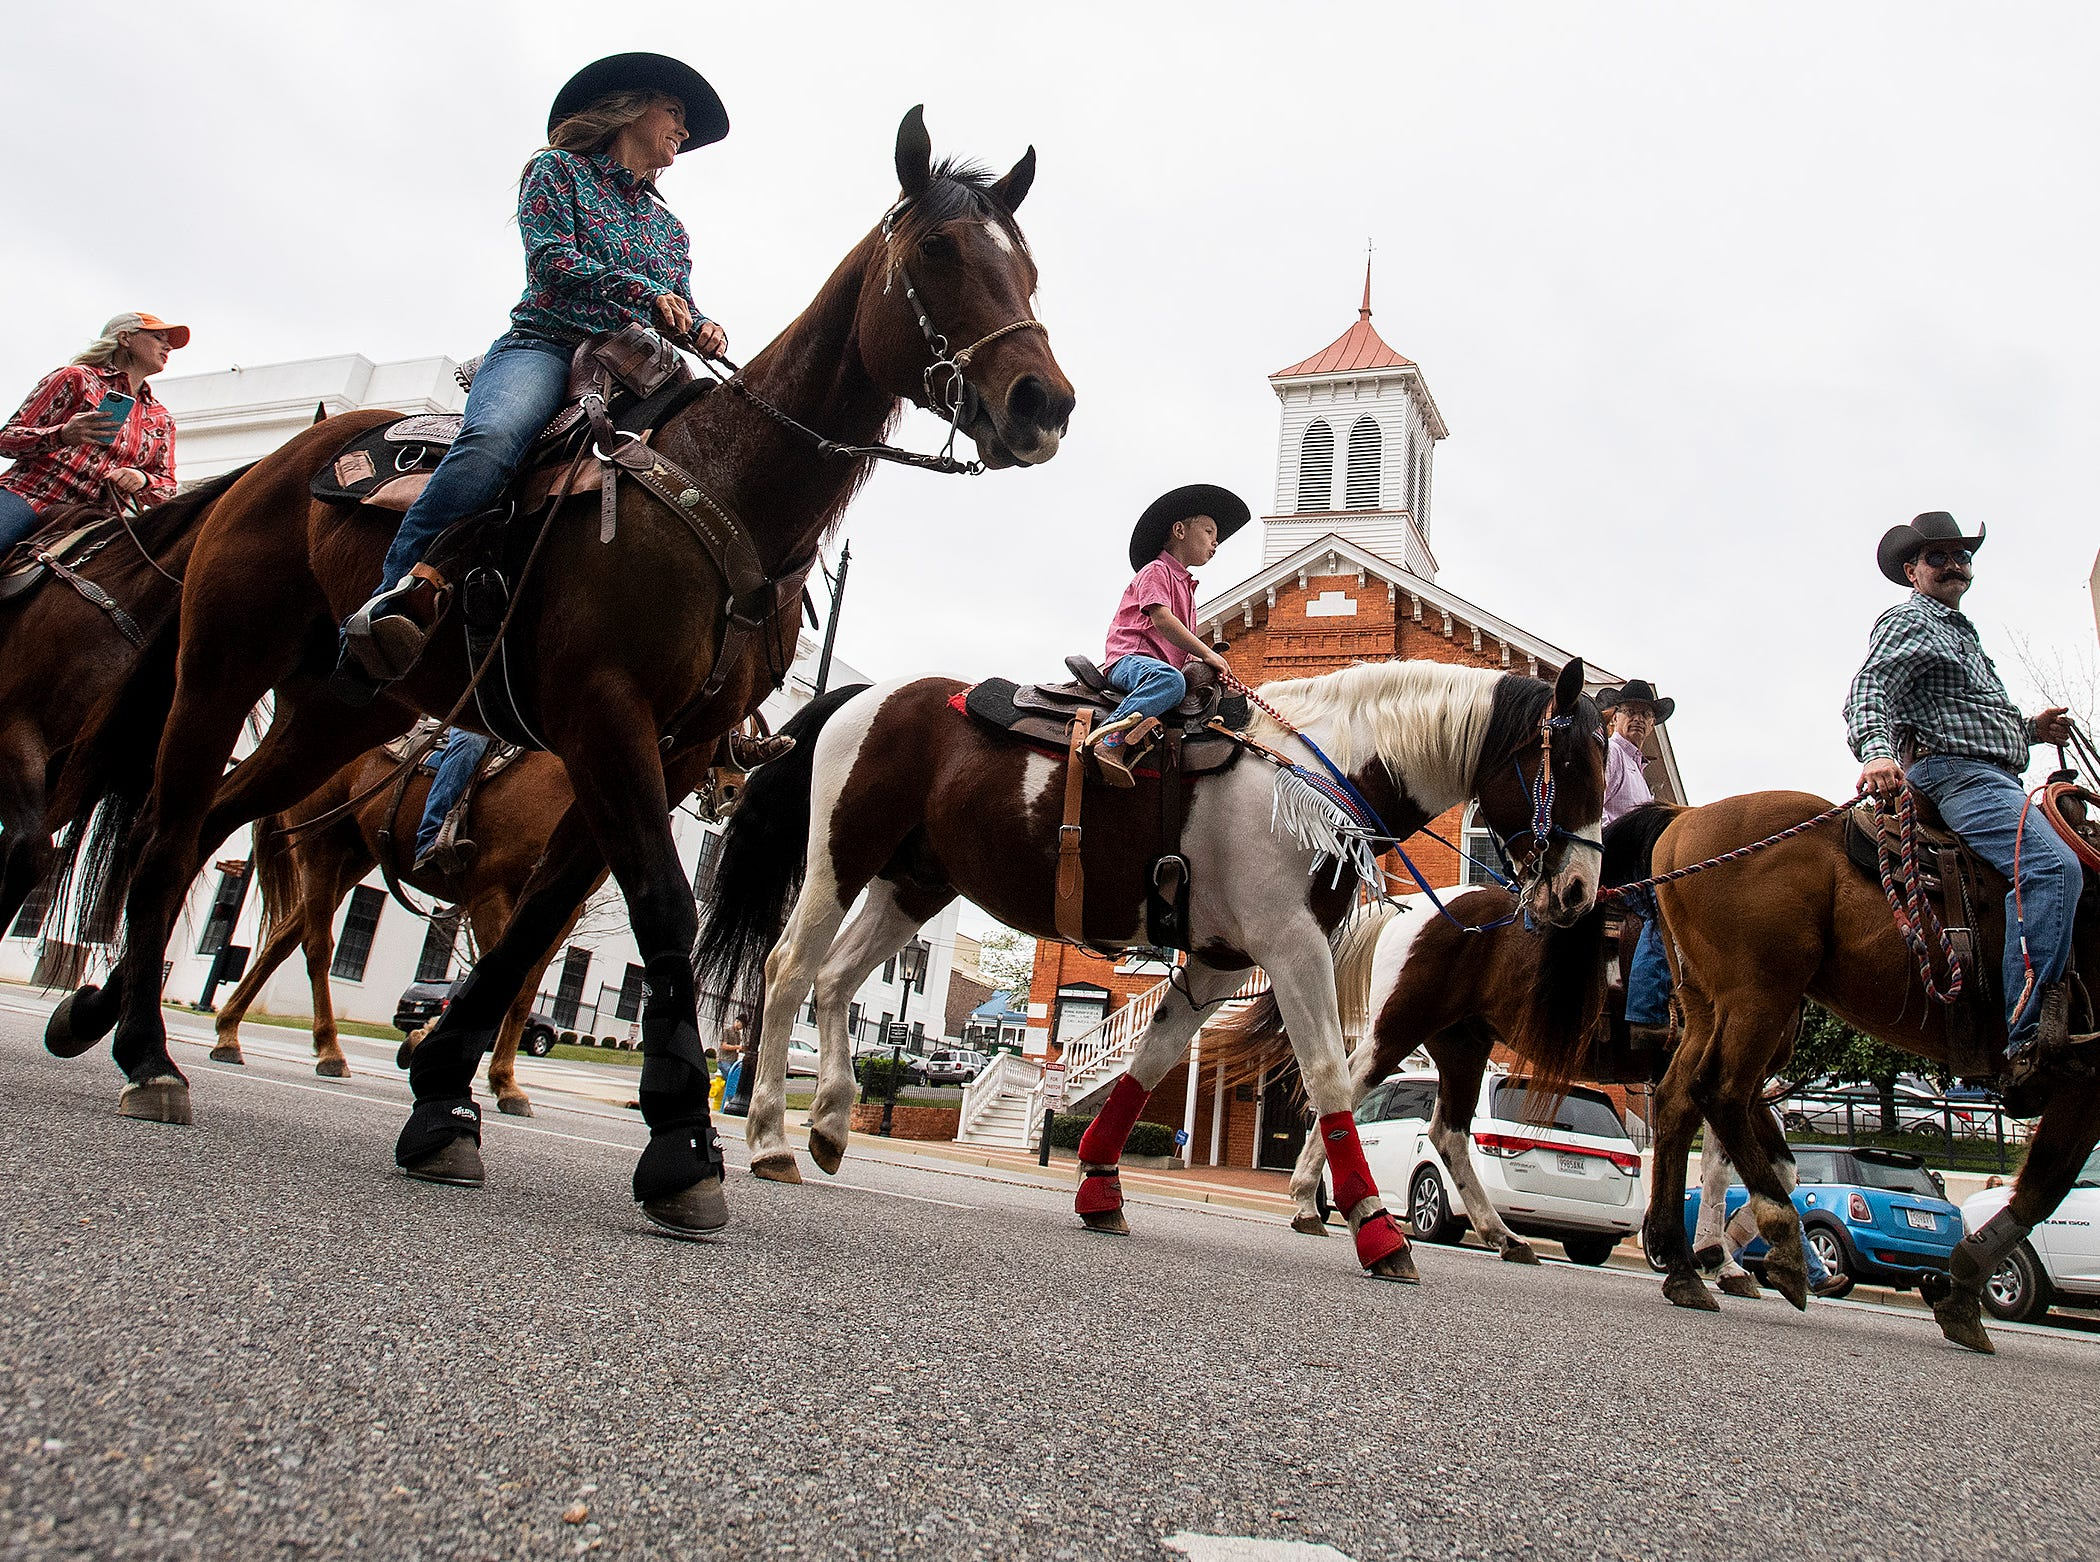 A wagon train and Rodeo Kick off Parade rides by the Dexter Avenue King memorial Baptist Church in Montgomery, Ala., on Thursday March 14, 2019 promoting the SLE Rodeo which runs through Saturday at Garrett Coliseum.